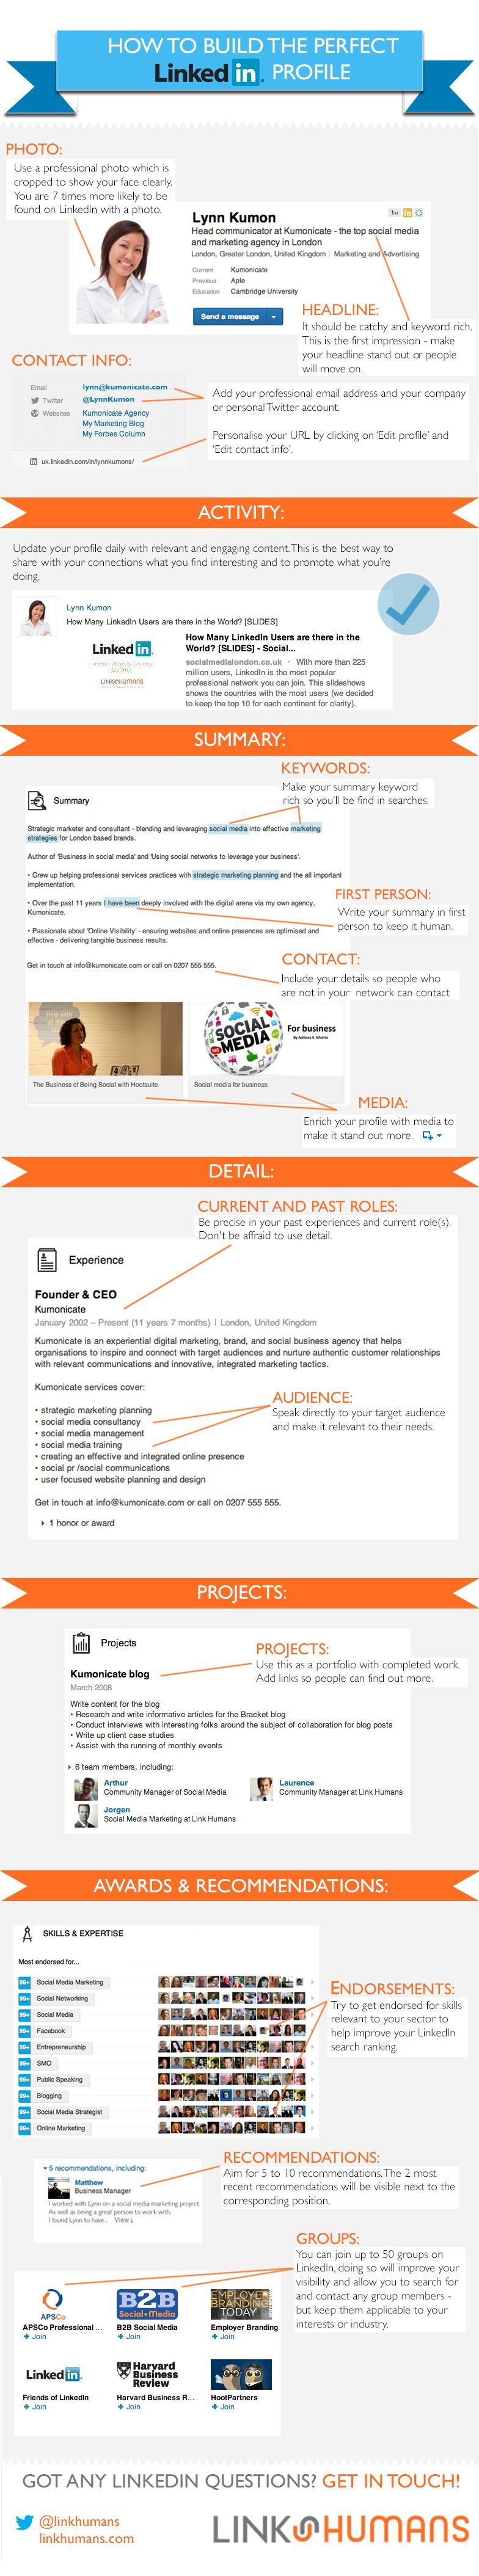 building the perfect linkedin profile infographic